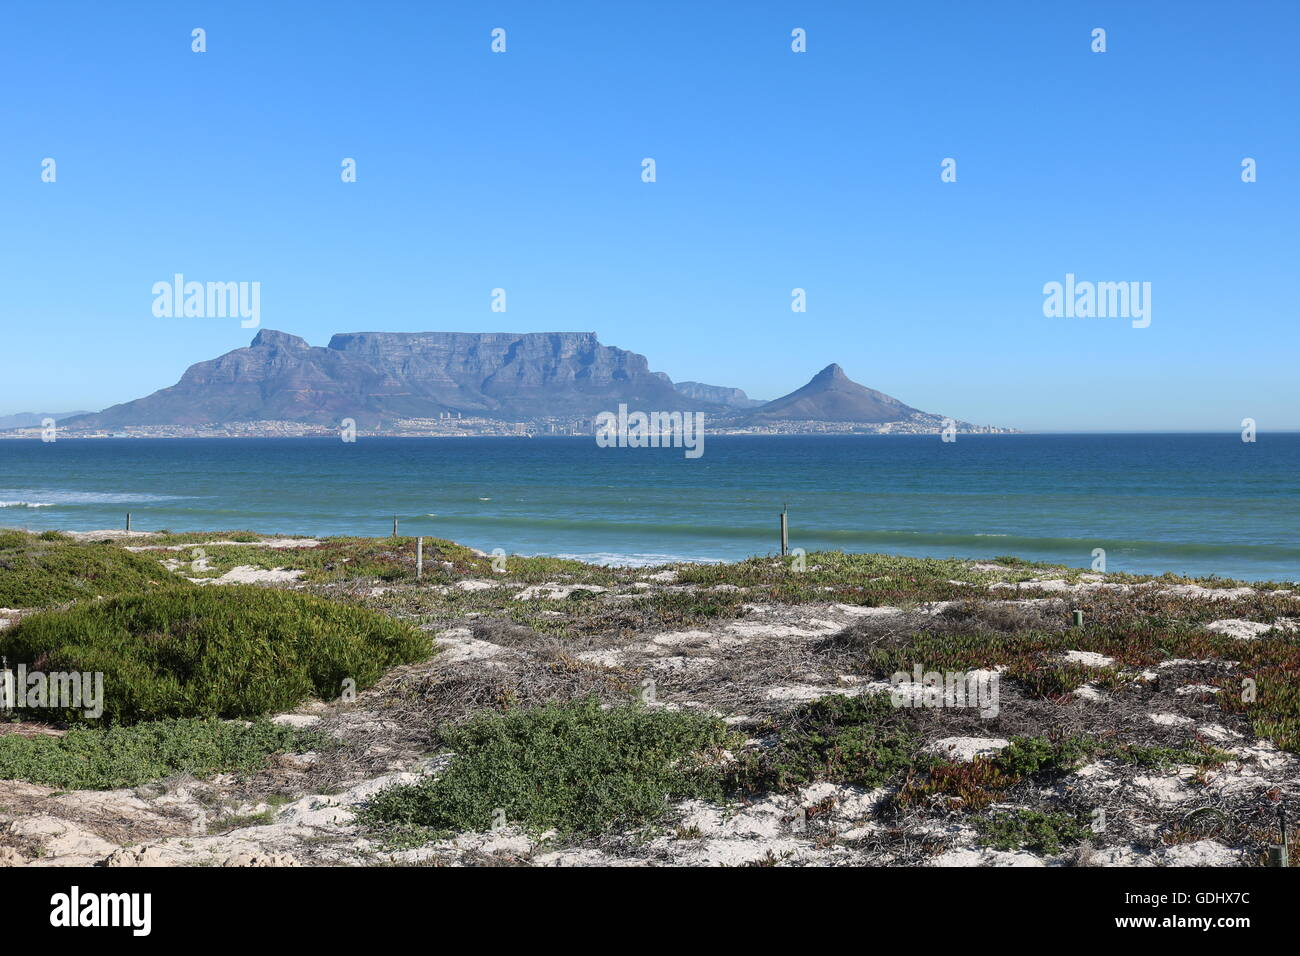 Table Mountain, Cape town afrique du sud Banque D'Images